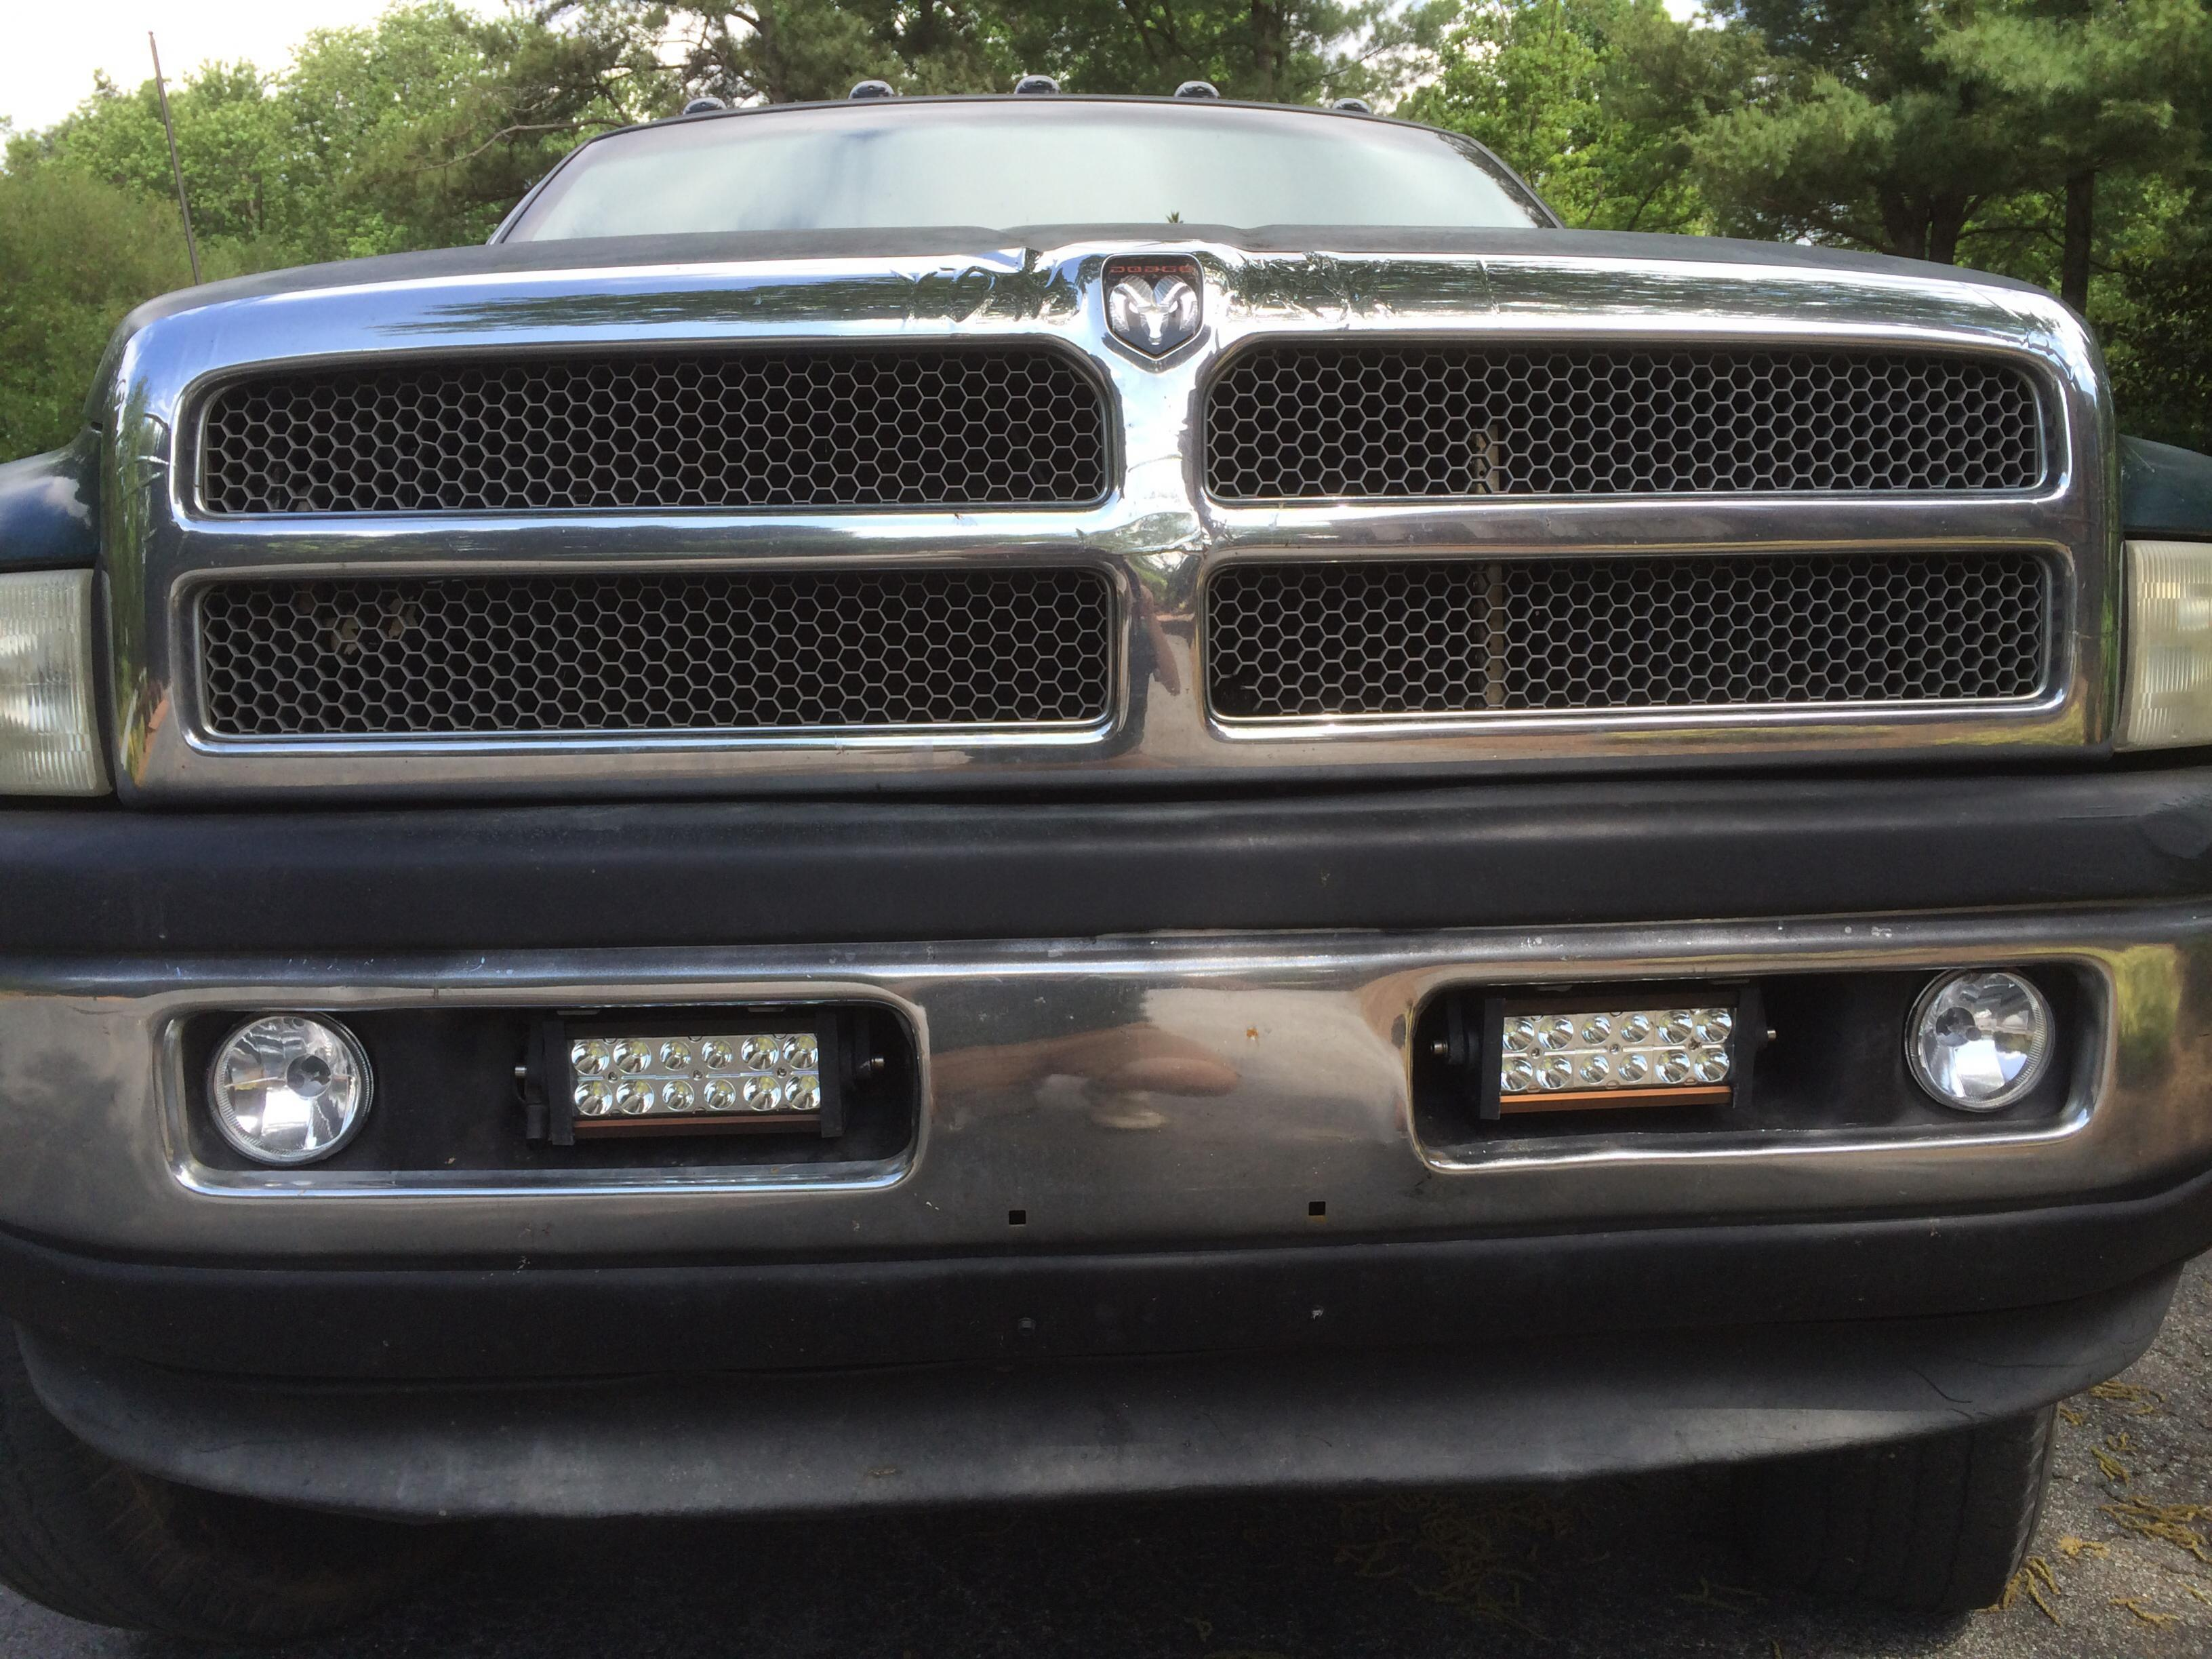 Led Light Bar - Page 2 - Dodge mins Diesel Forum